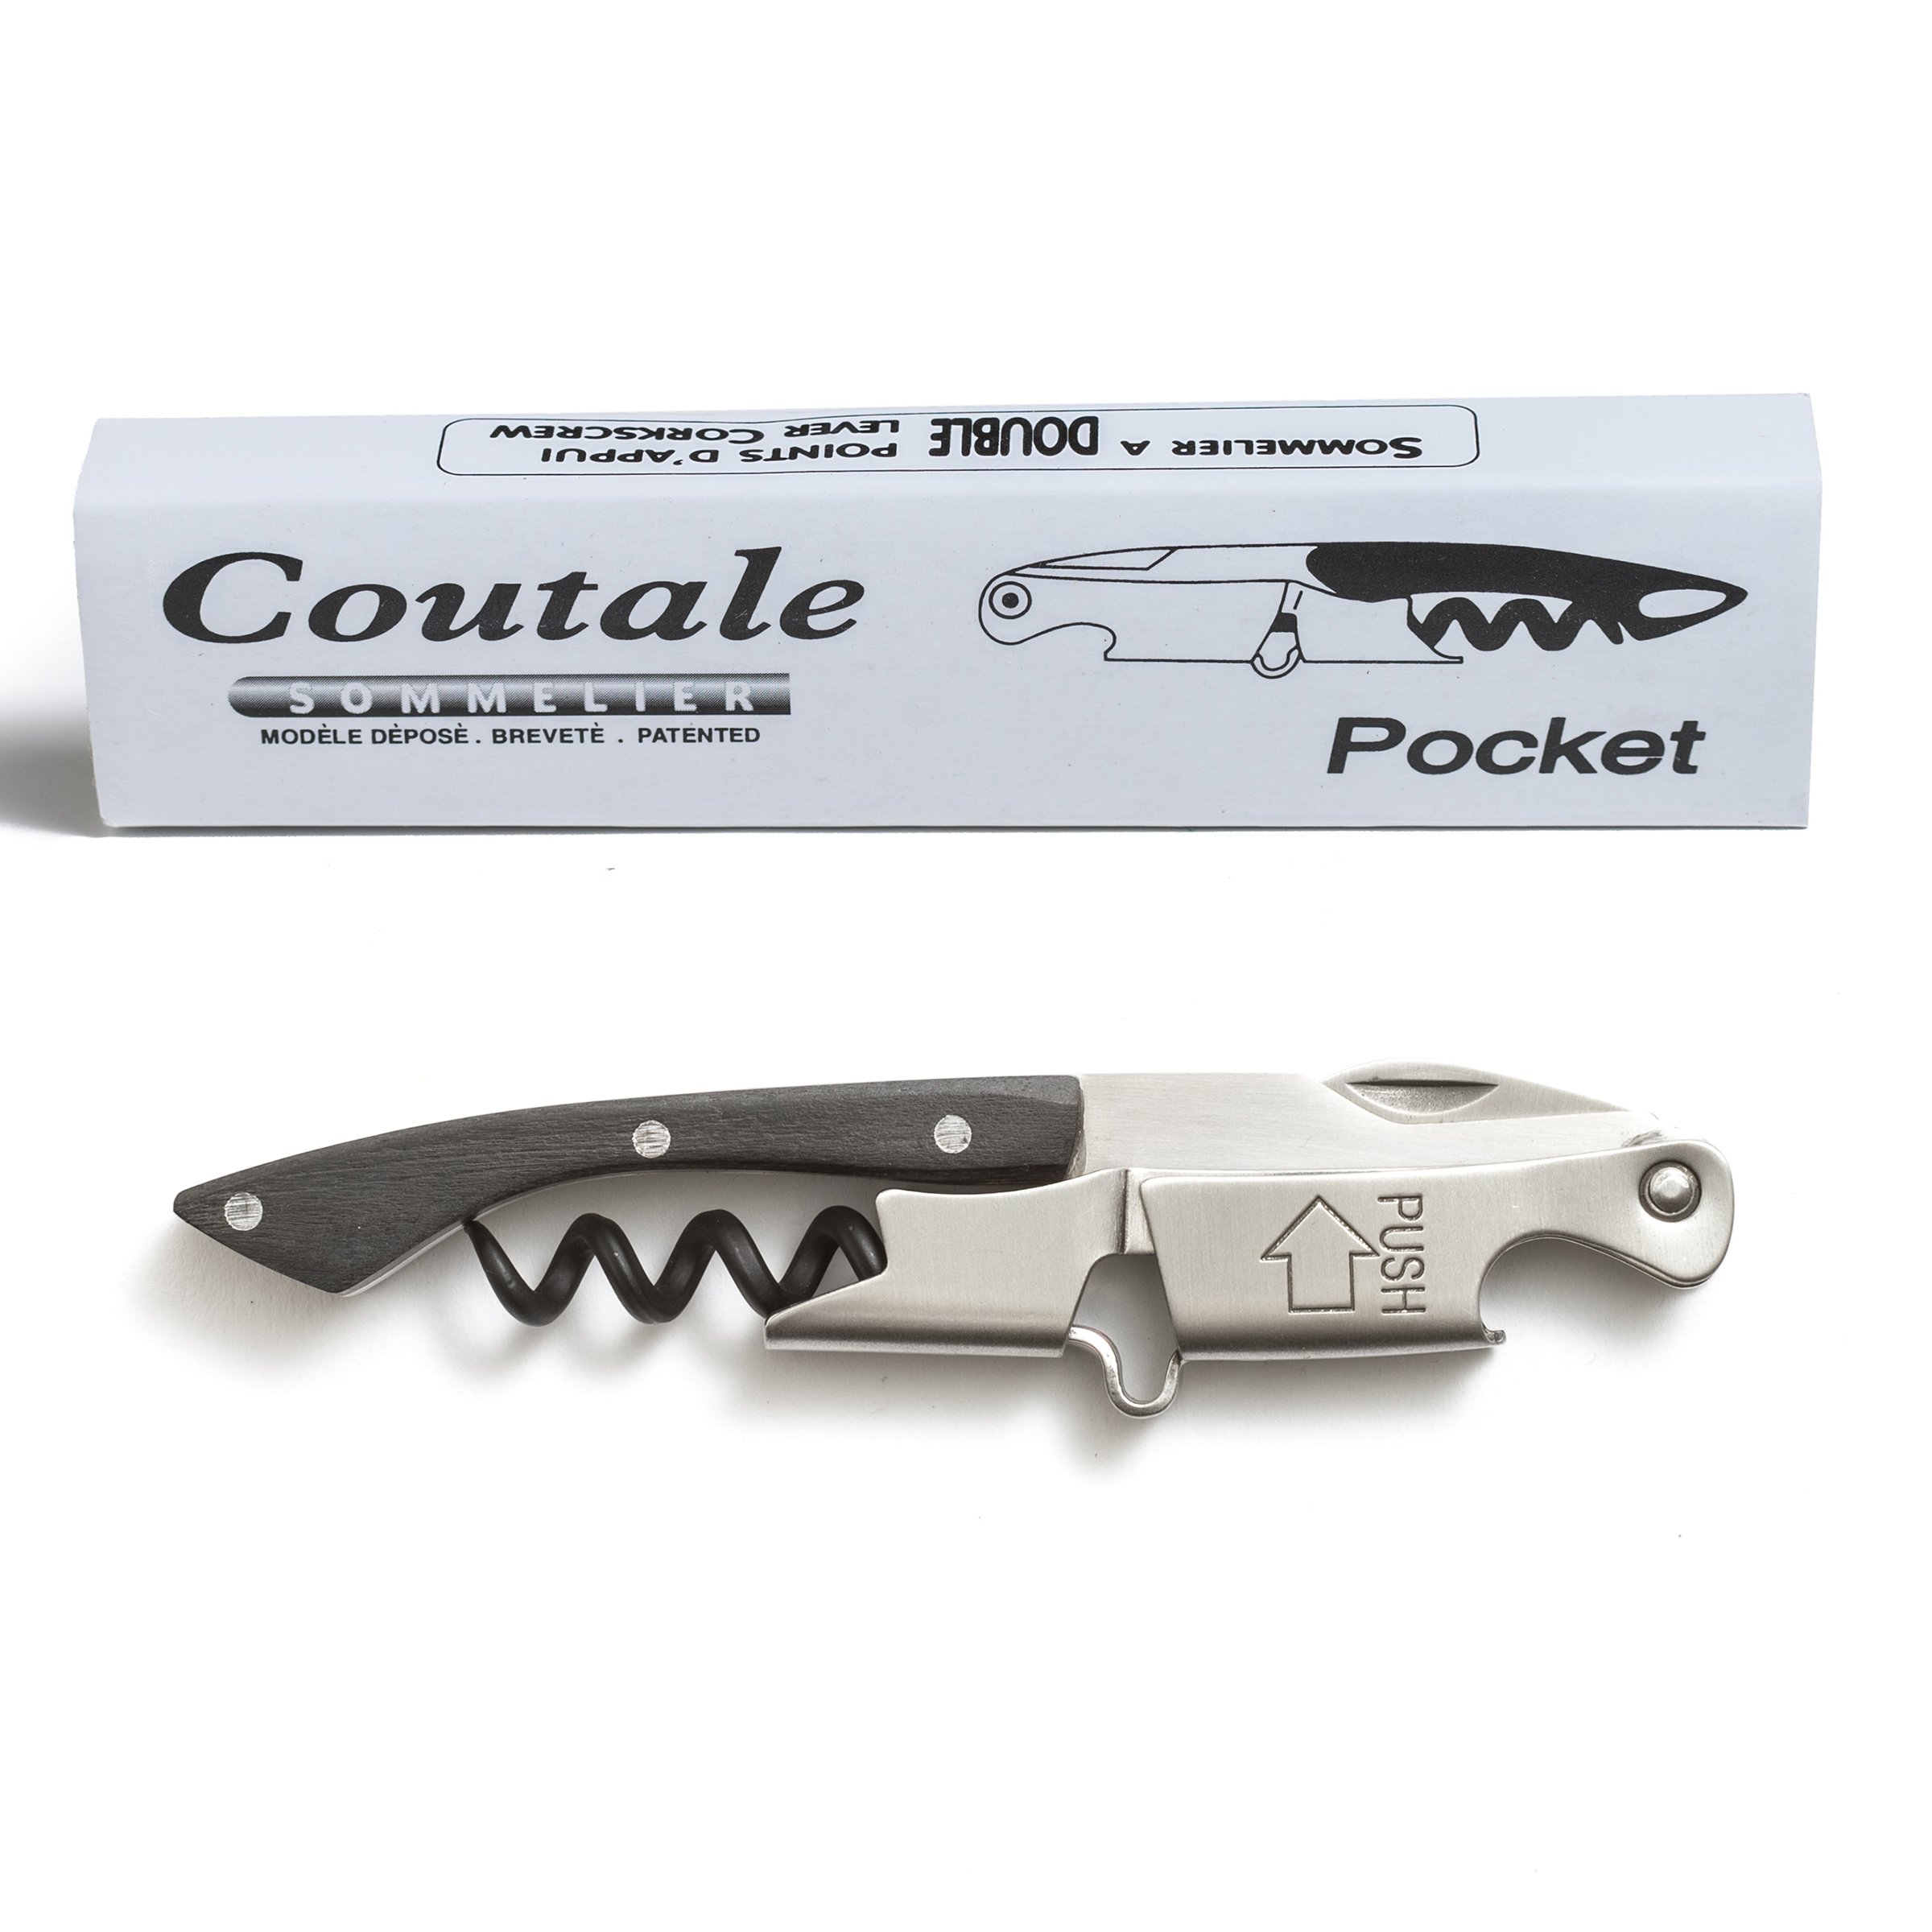 Pocket By Coutale Sommelier - The French Patented Spring-Loaded Double Lever Waiters Corkscrew and Wine Bottle Opener (Blackwood) by Coutale Sommelier